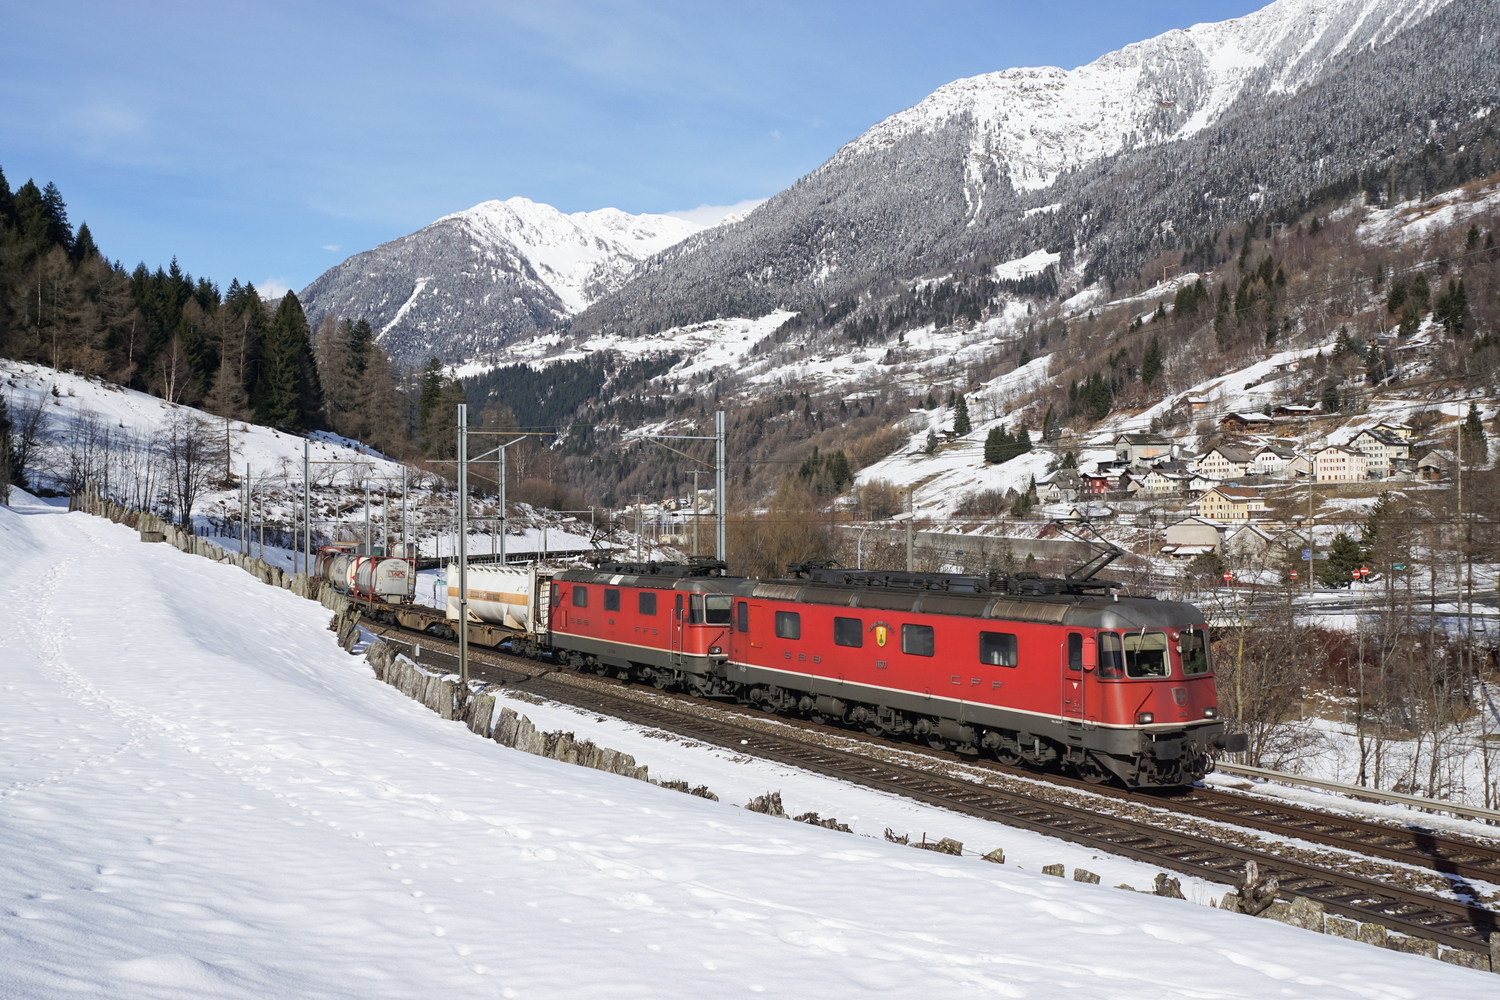 SBB Re 66 11677 Neuhausen am Rheinfall Re 44 2 11326 02.jpg